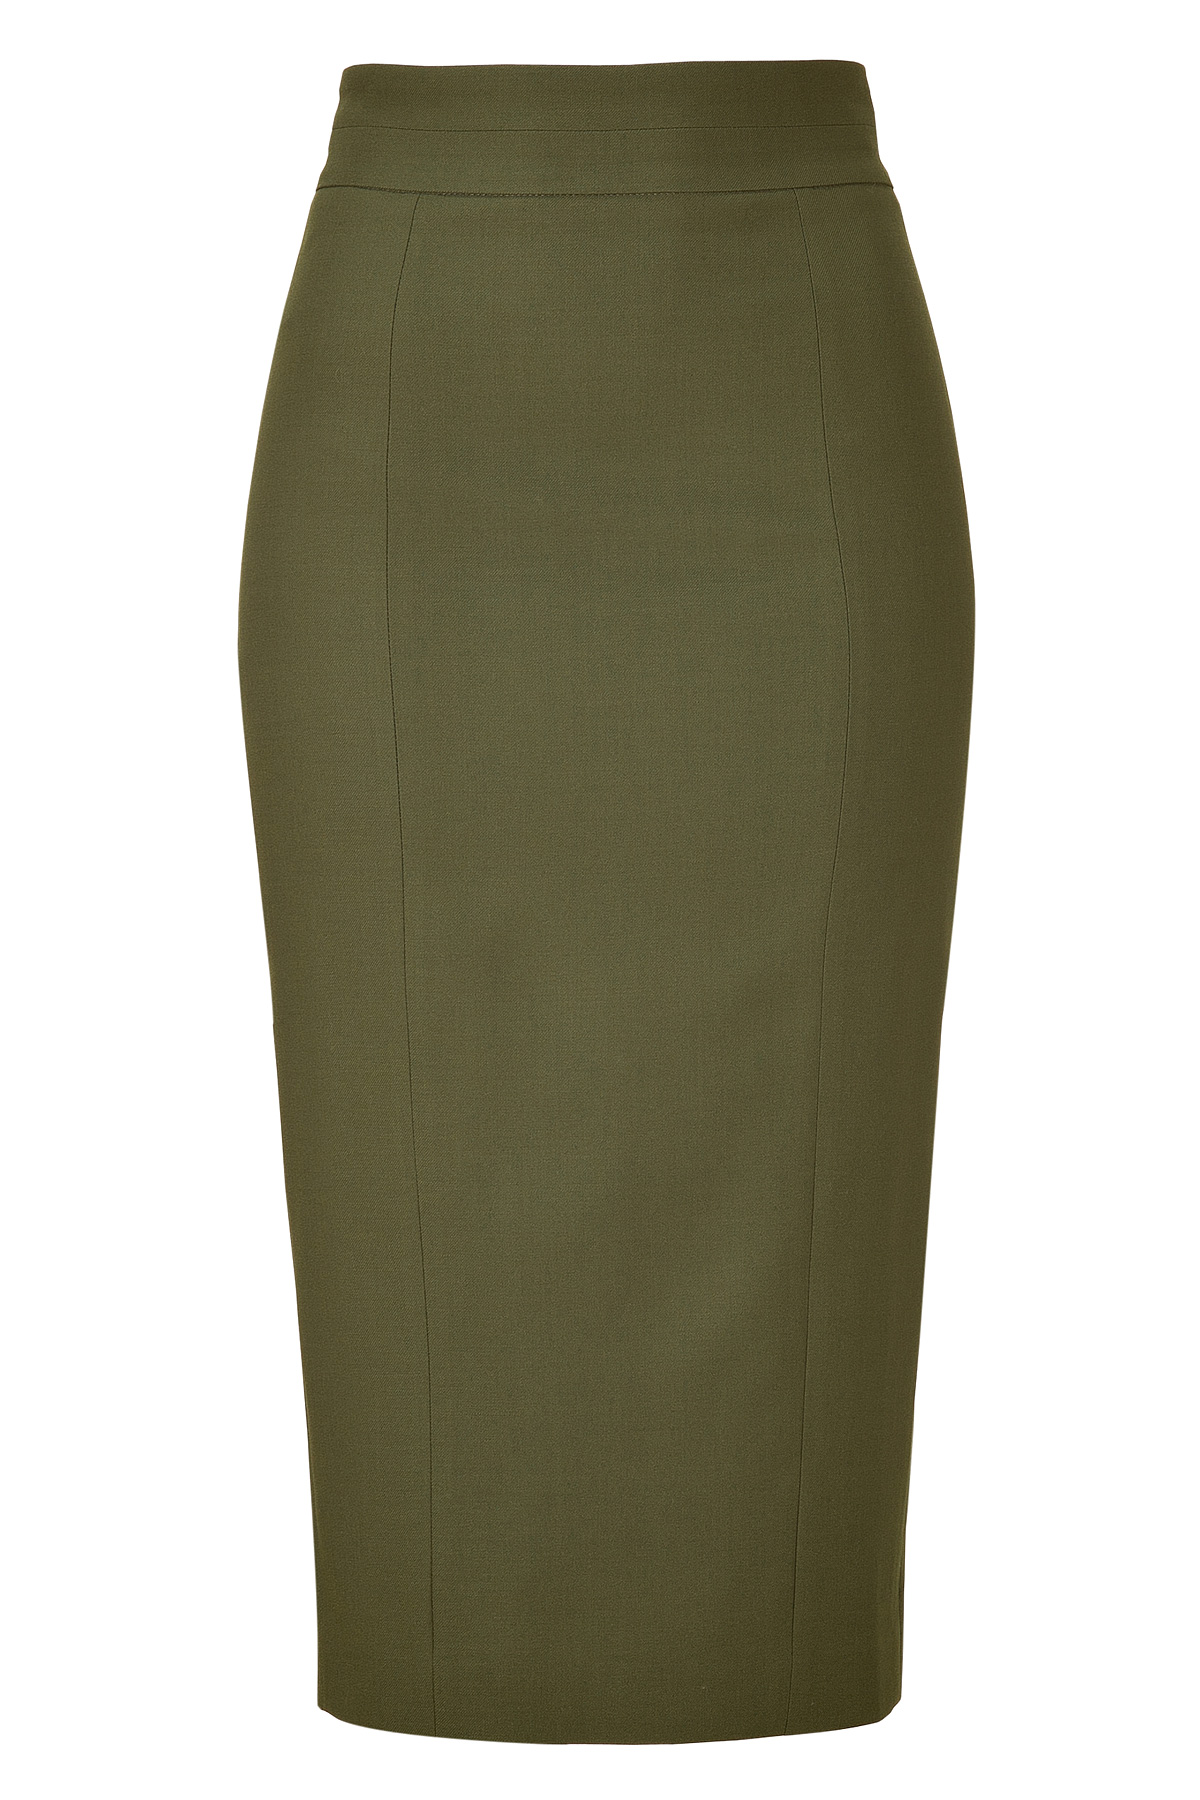 L'wren scott Khaki Wool Pencil Skirt in Black | Lyst